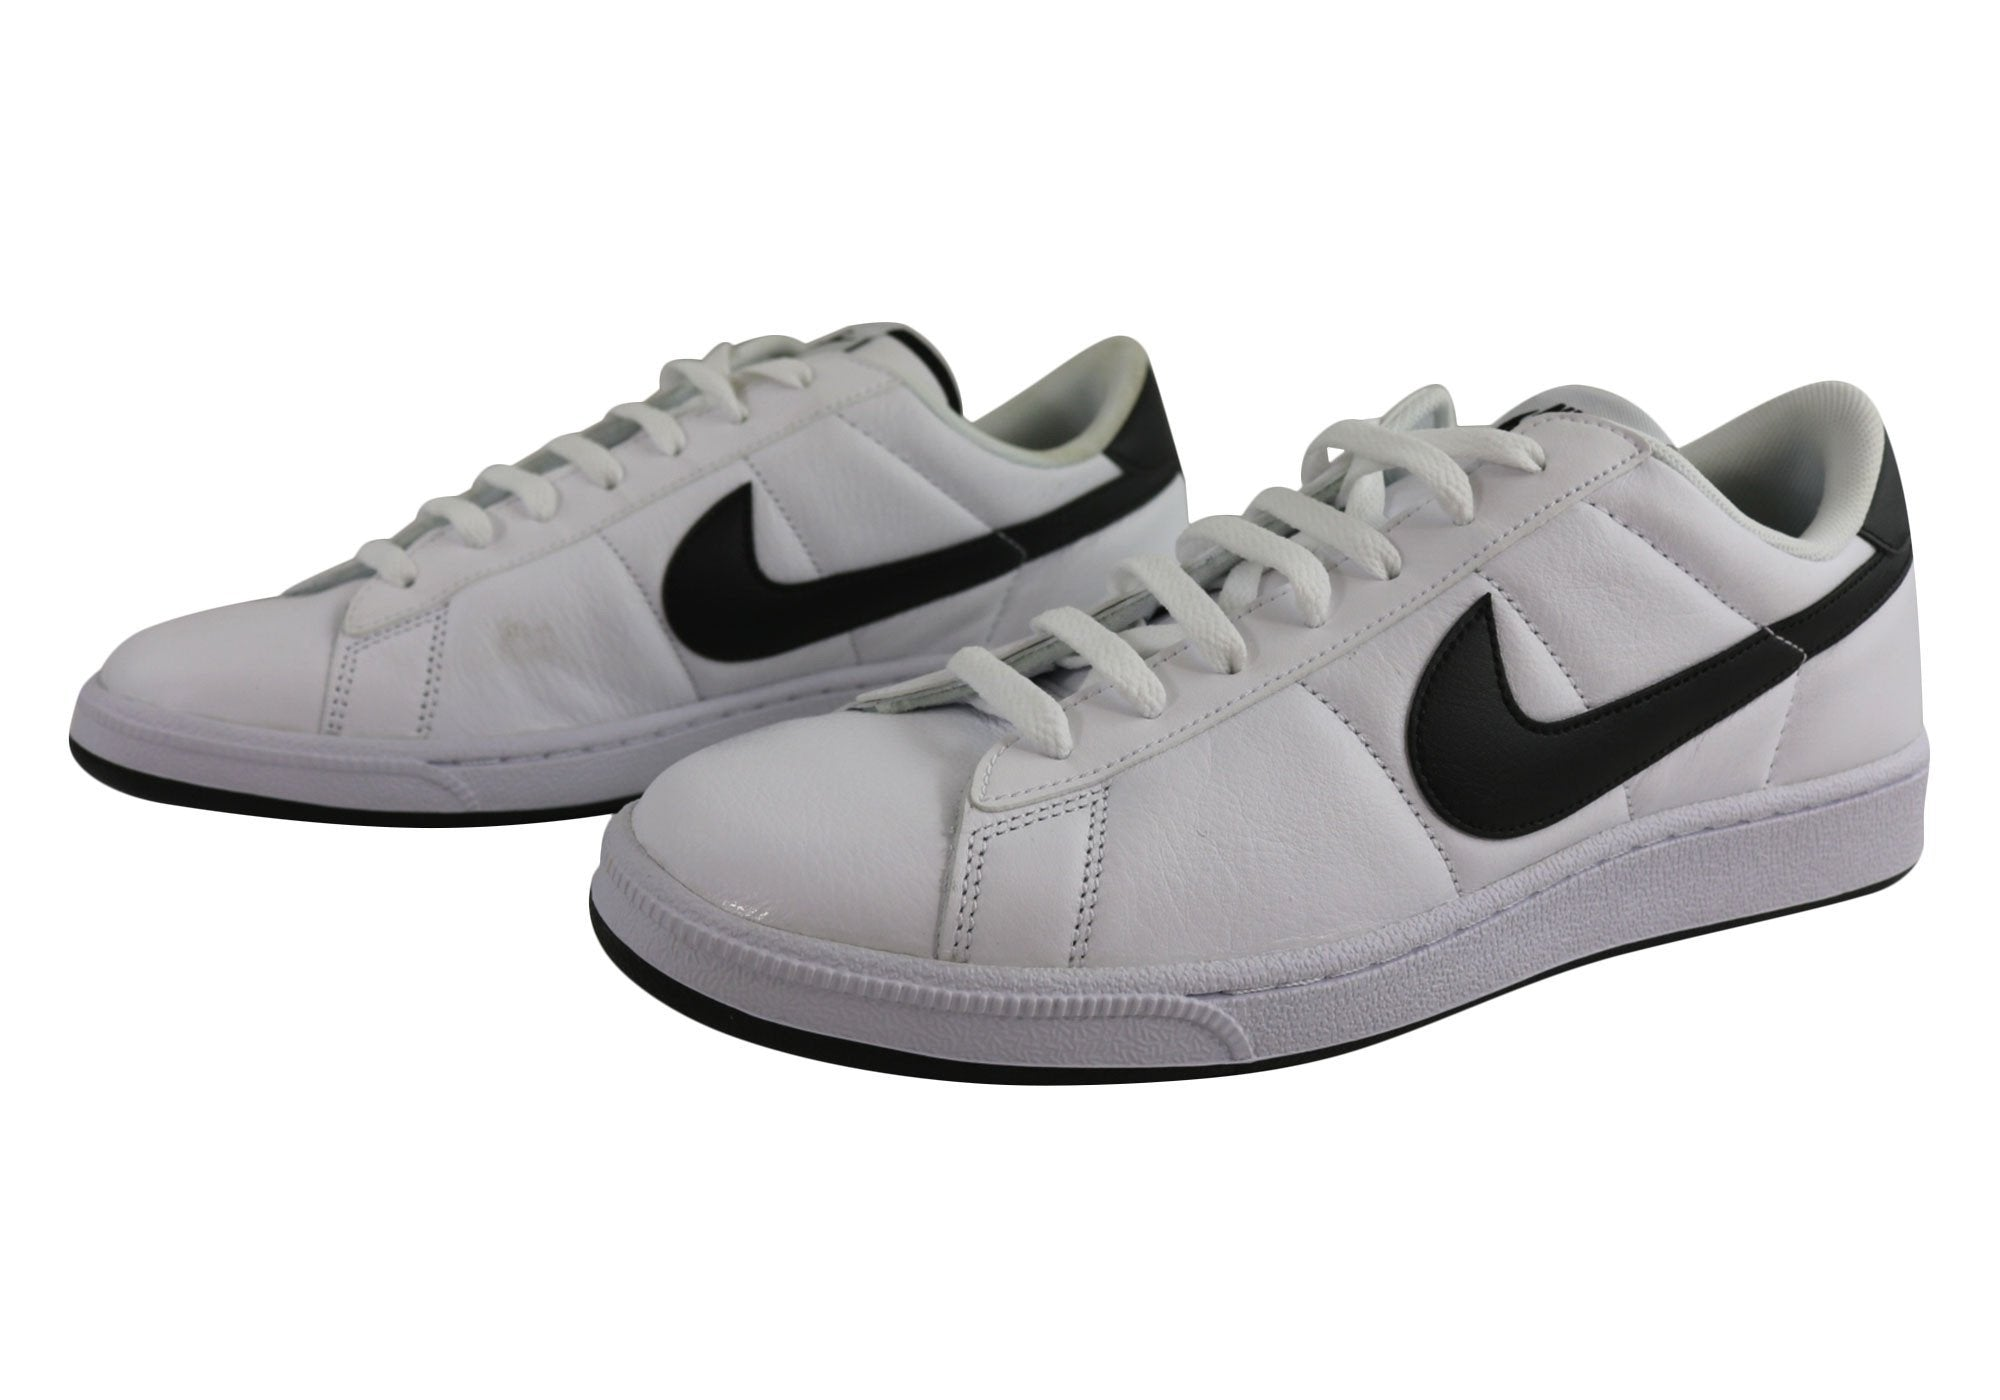 Nike Tennis Classic Mens Comfortable Lace Up Shoes – Mode